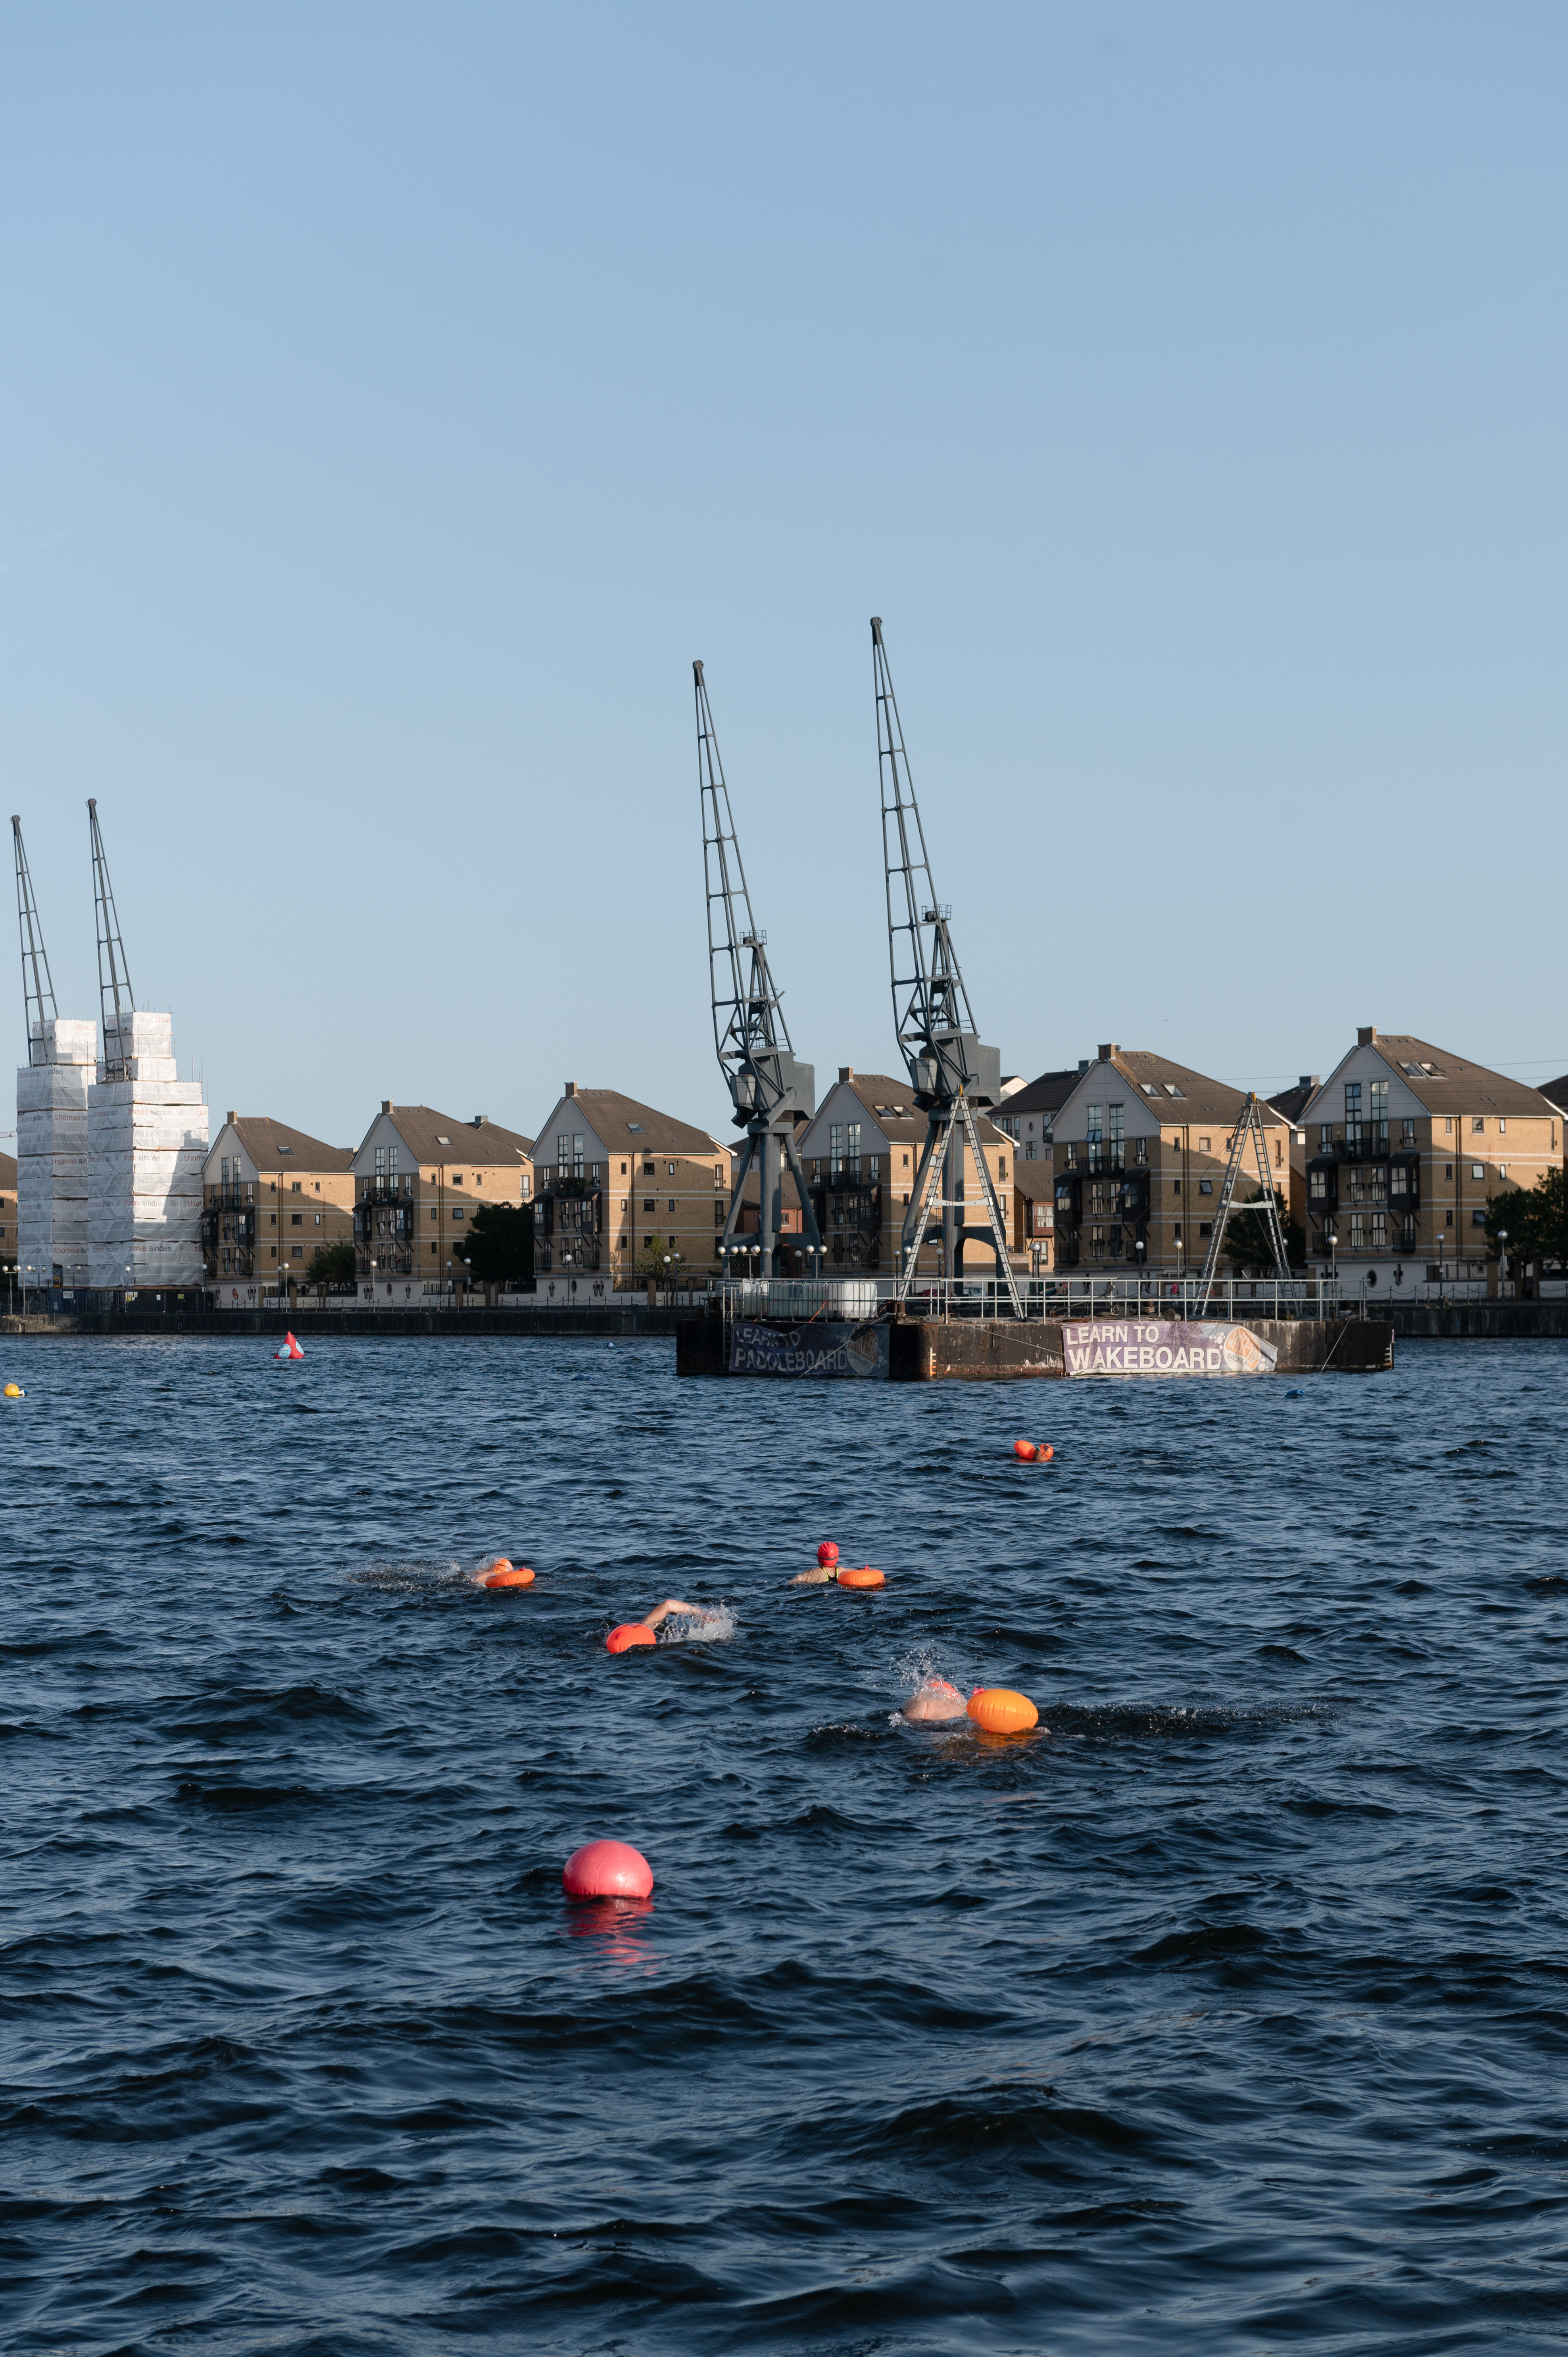 Blue dock water and cranes, with a few swimmers in orange caps